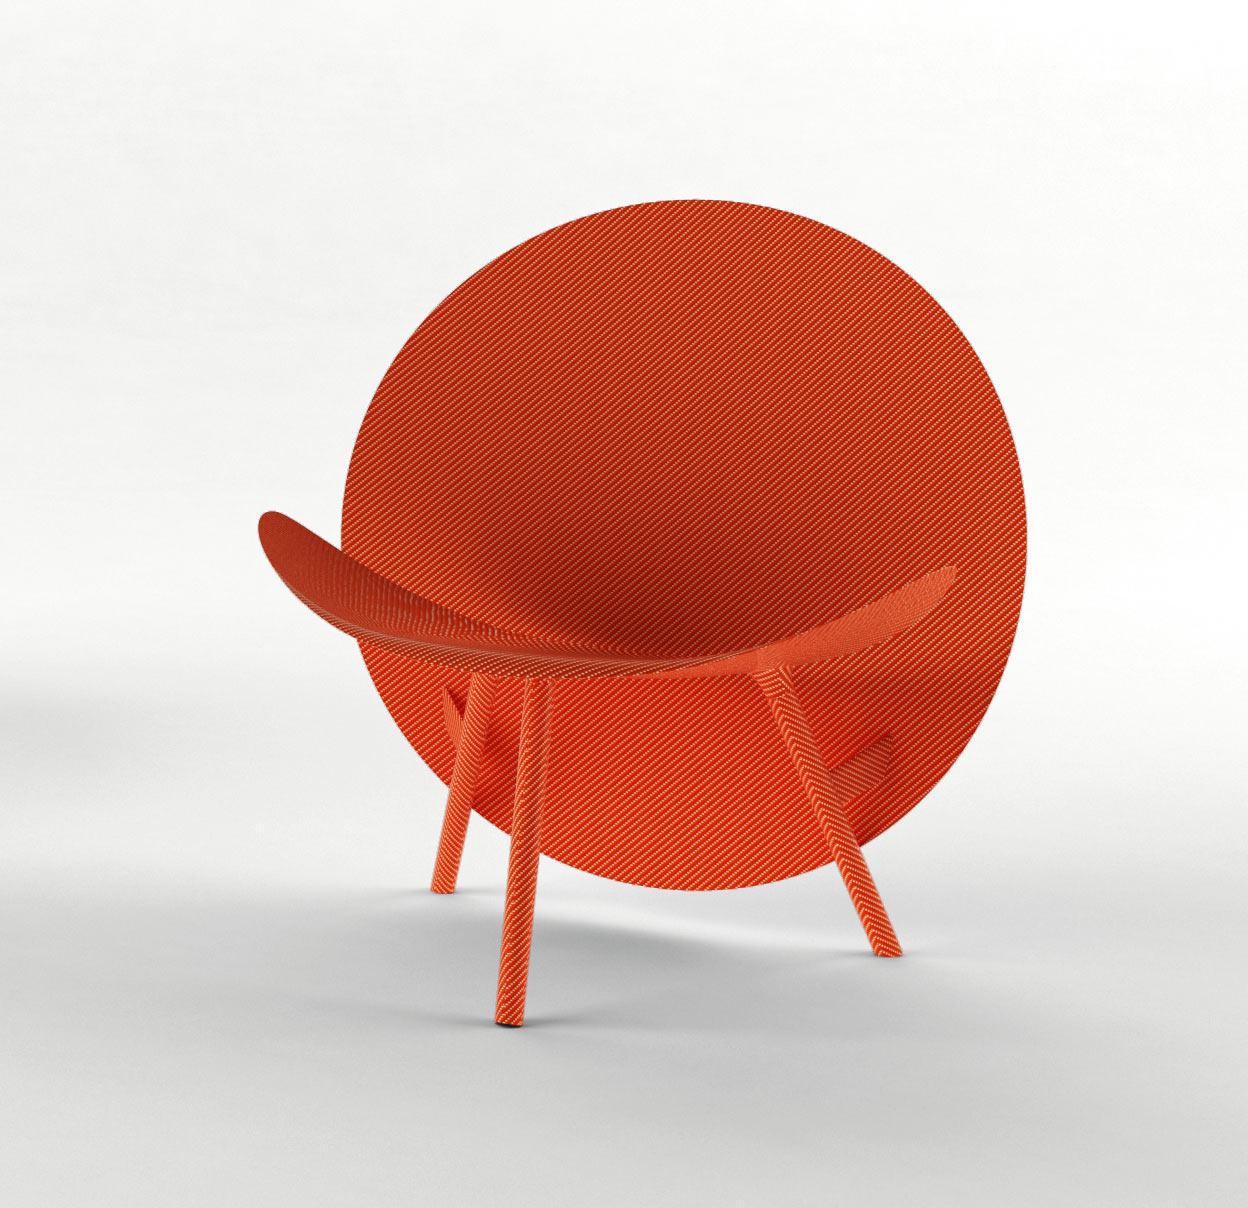 Hypetex-Halo-Chair-Michael-Sodeau-3